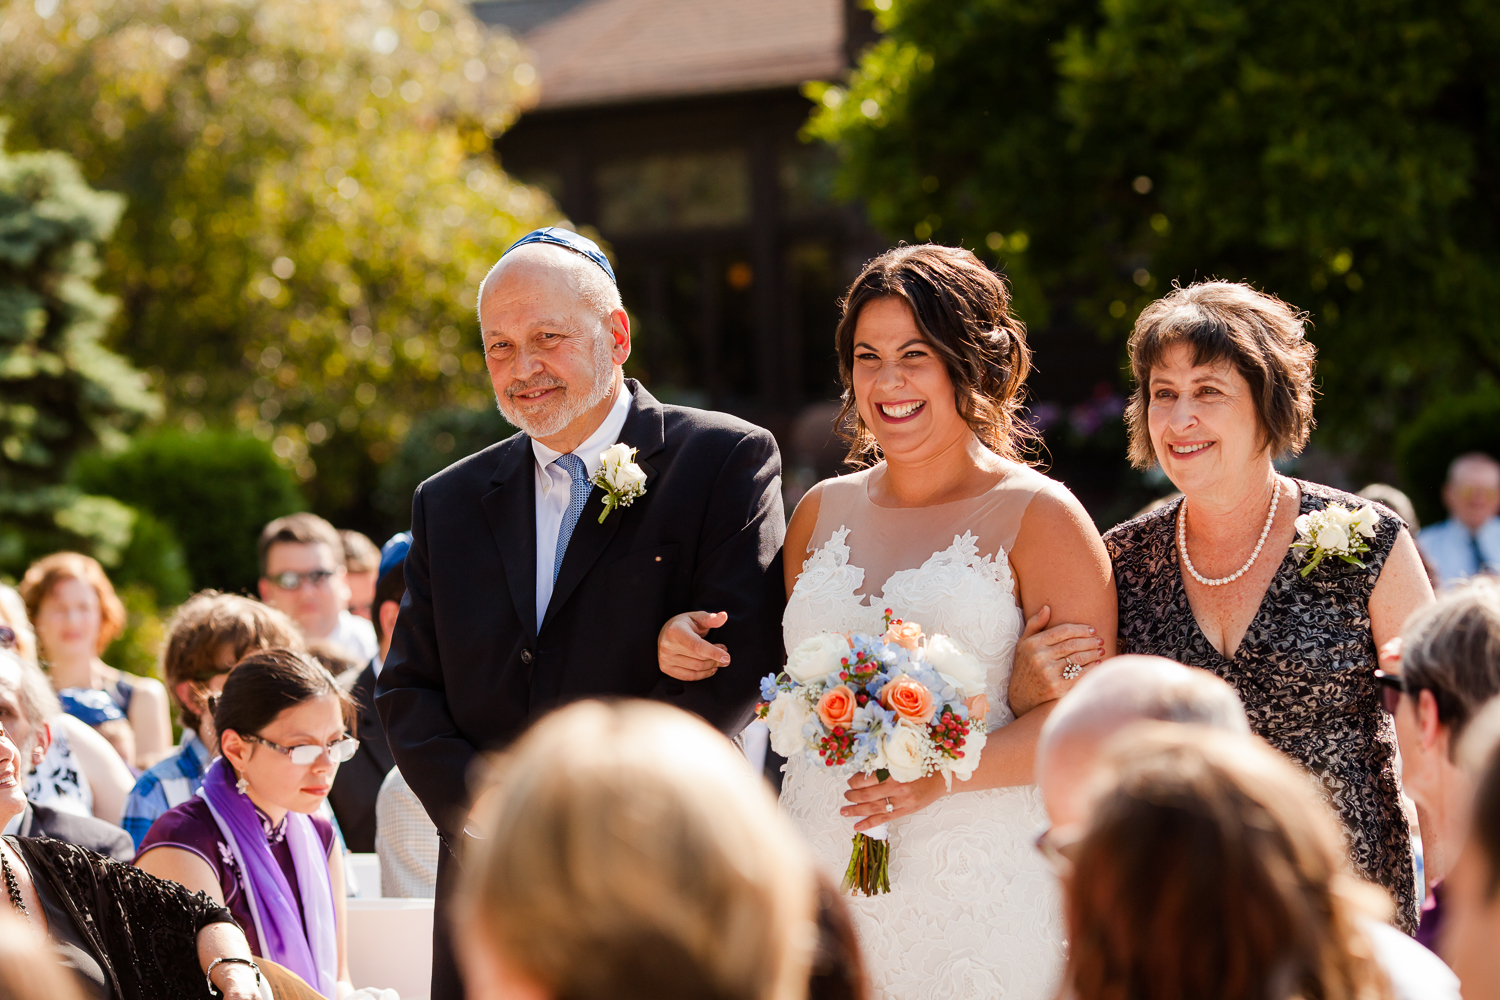 Bride smiles as she walks down the aisle with her mother and father.